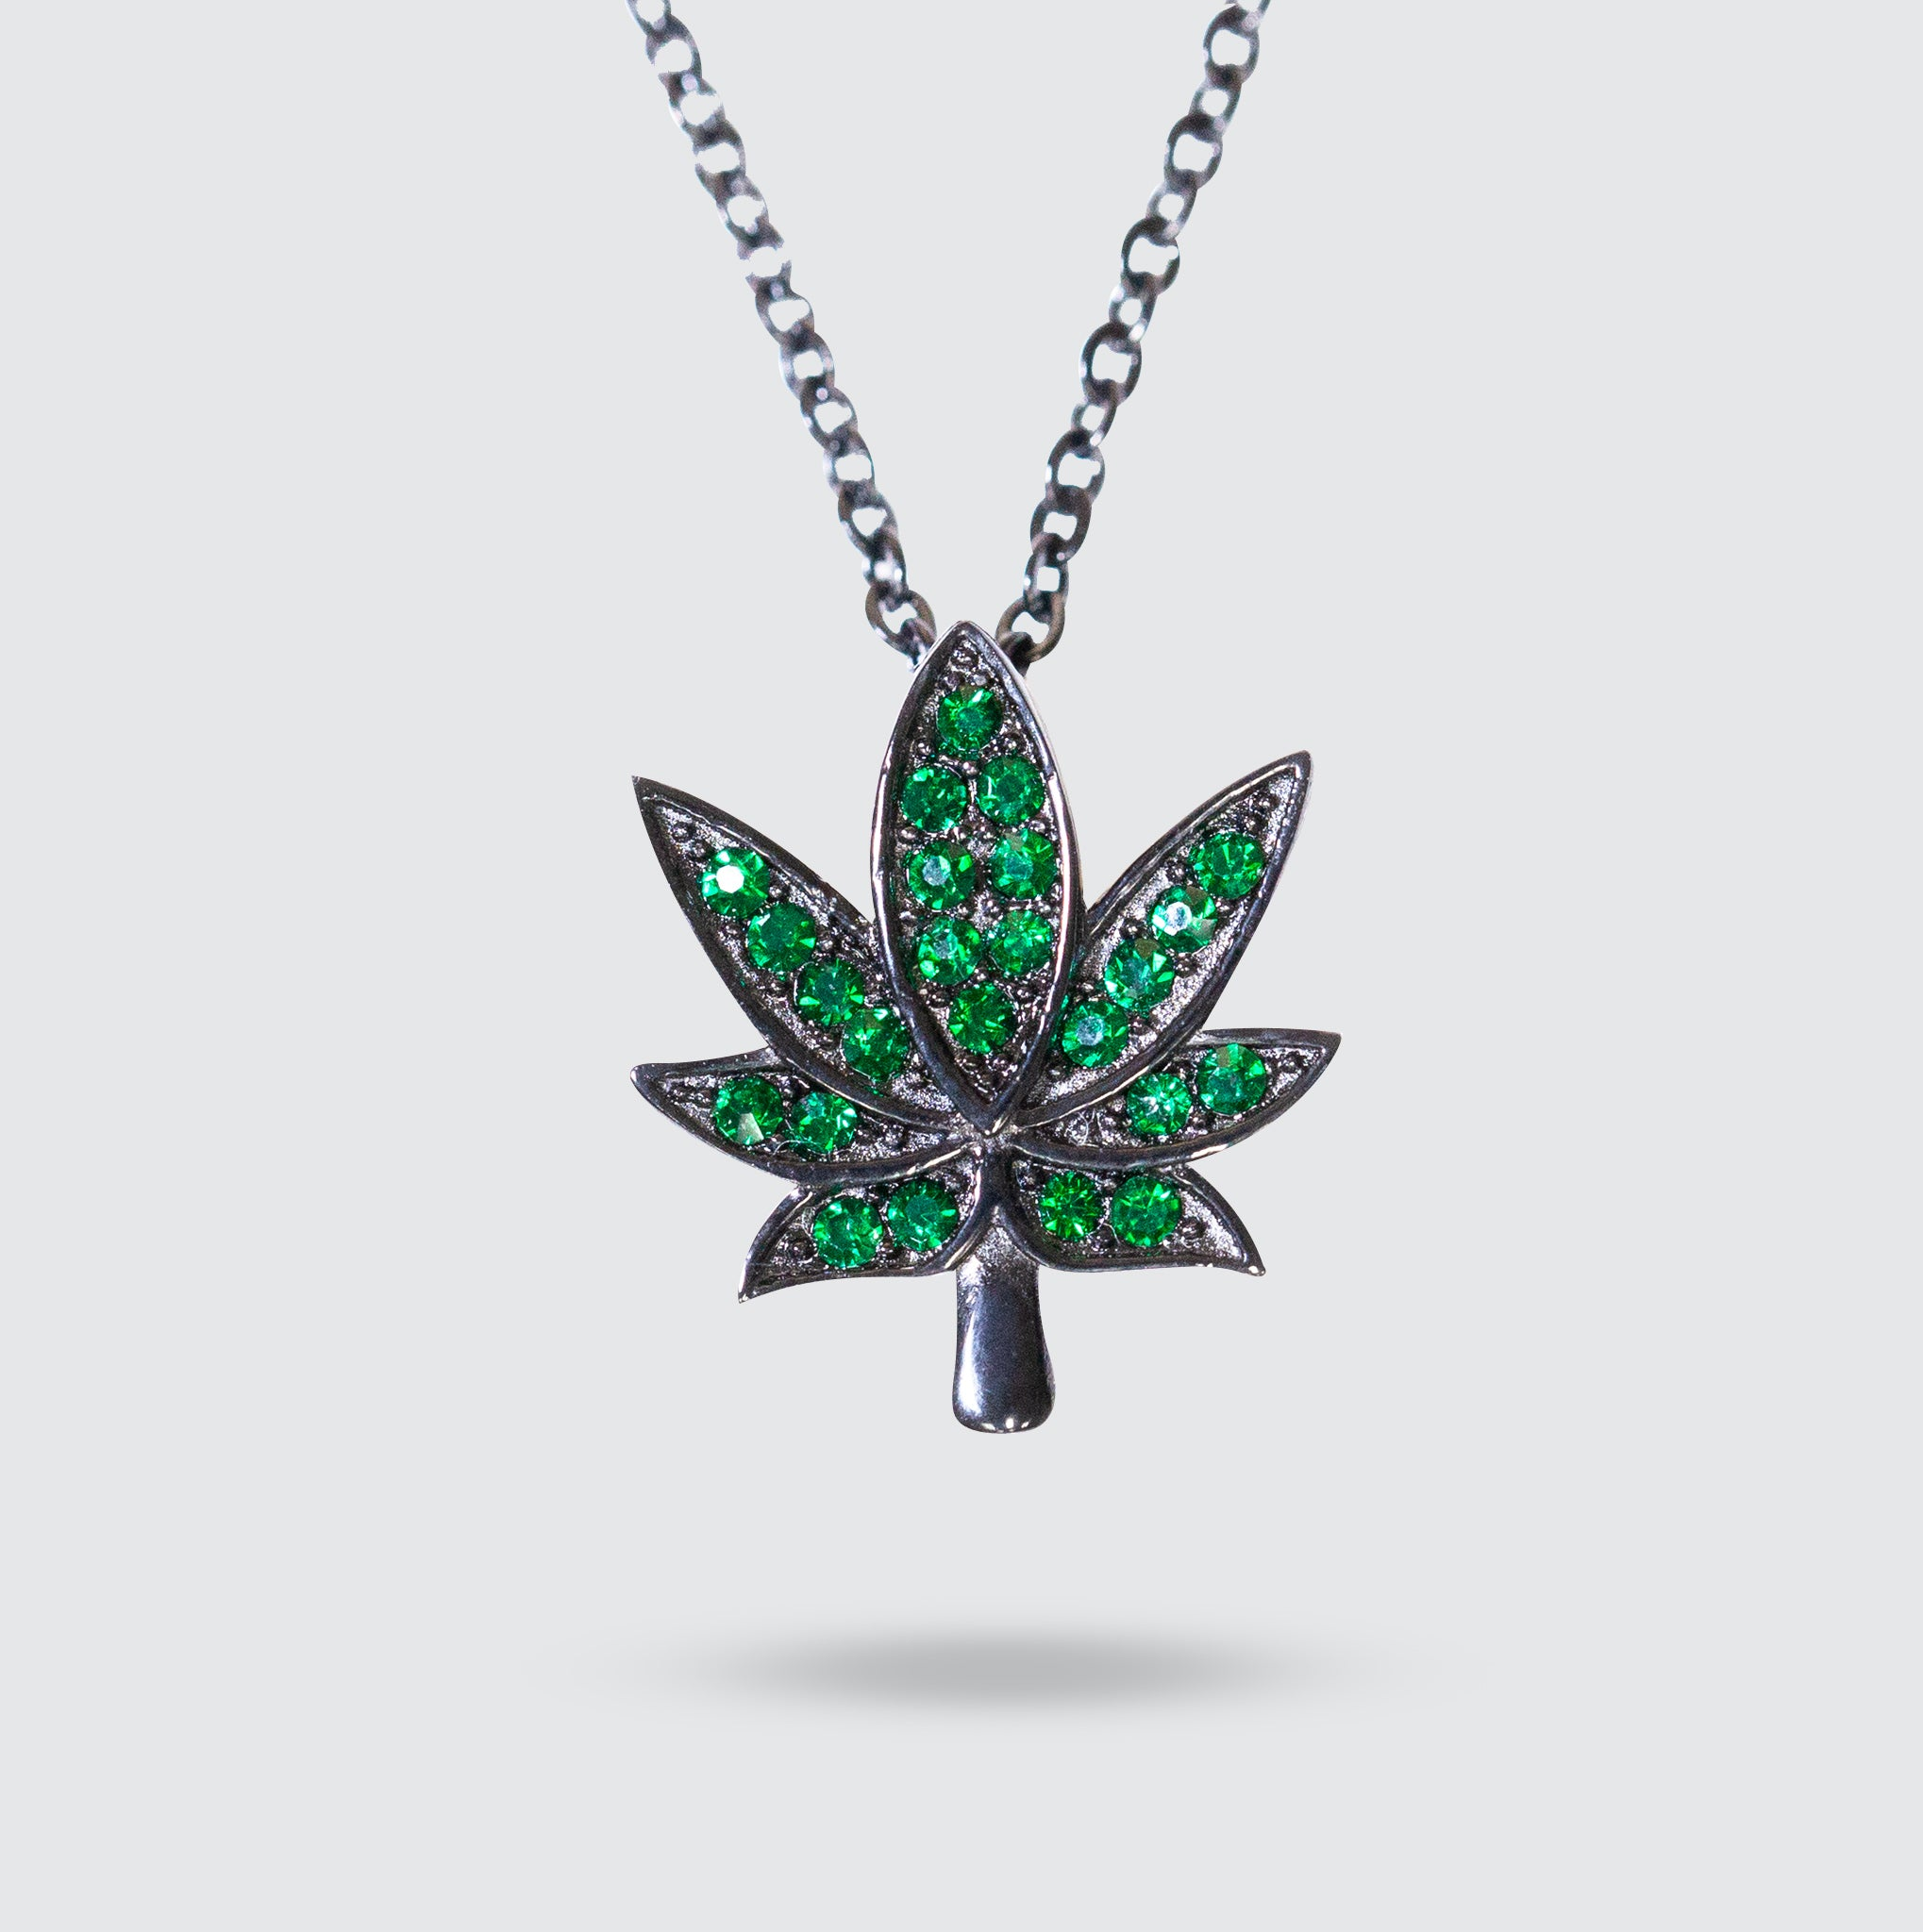 Green Cannabis Leaf Necklace